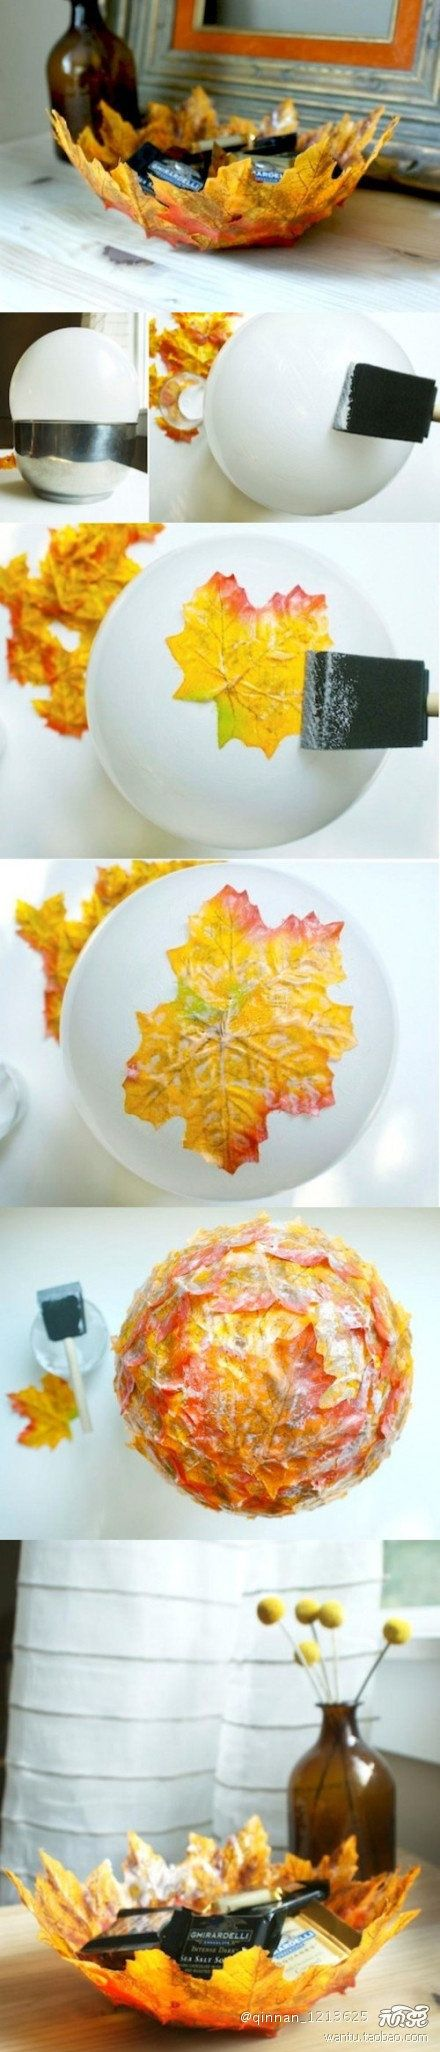 DIY Leaf Bowl autumn | DiyReal.com